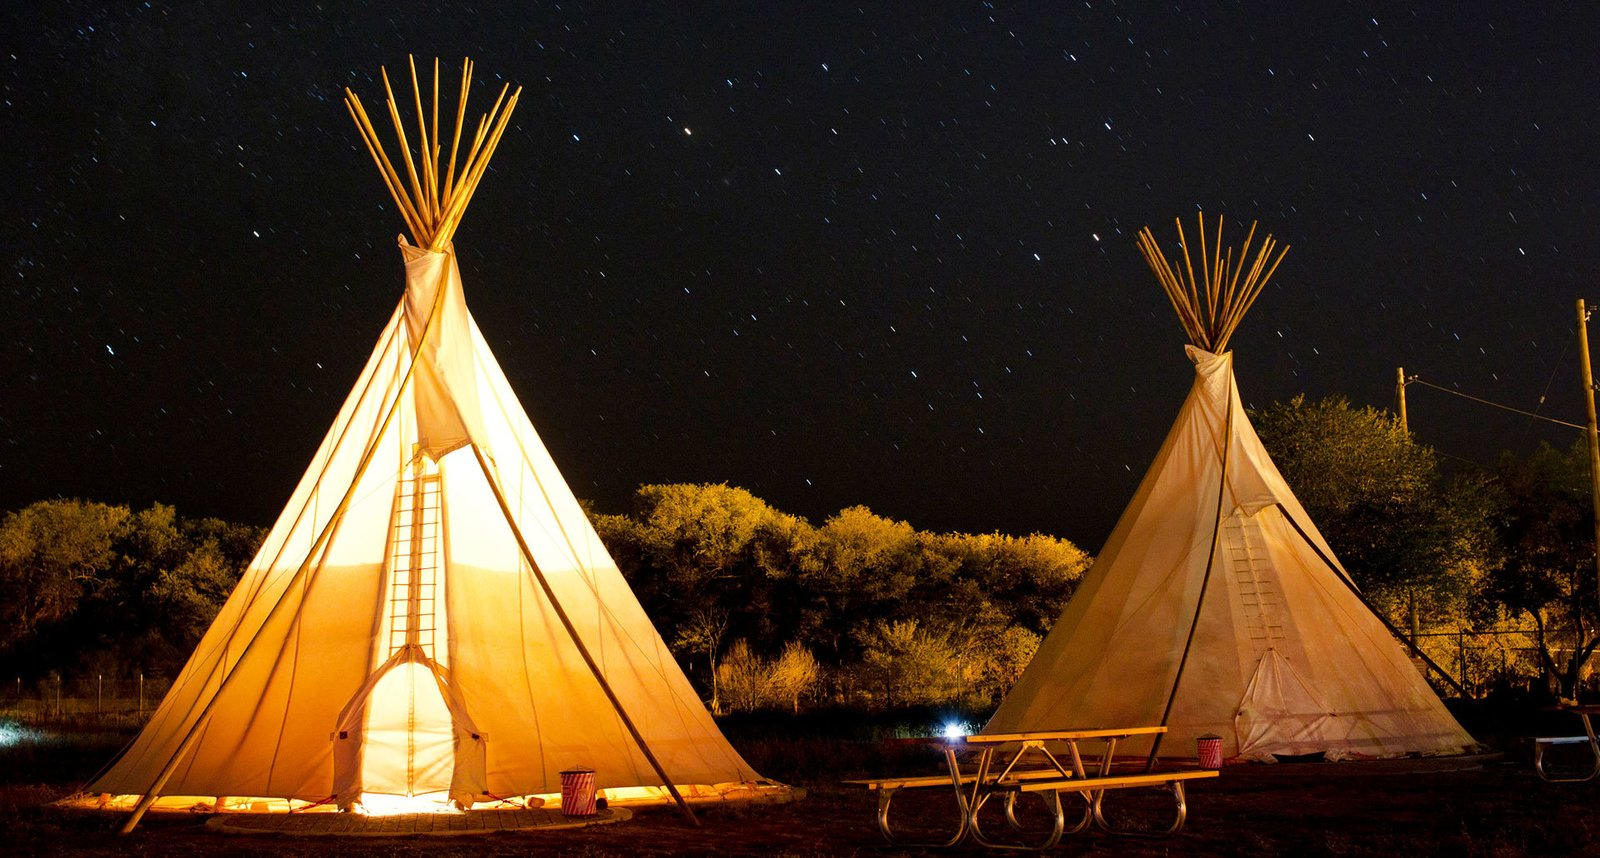 Exterior and Tent Building Type El Cosmico in Marfa, Texas  Photo 12 of 12 in 12 Epic Hotels That Take Glamping to the Next Level from El Cosmico